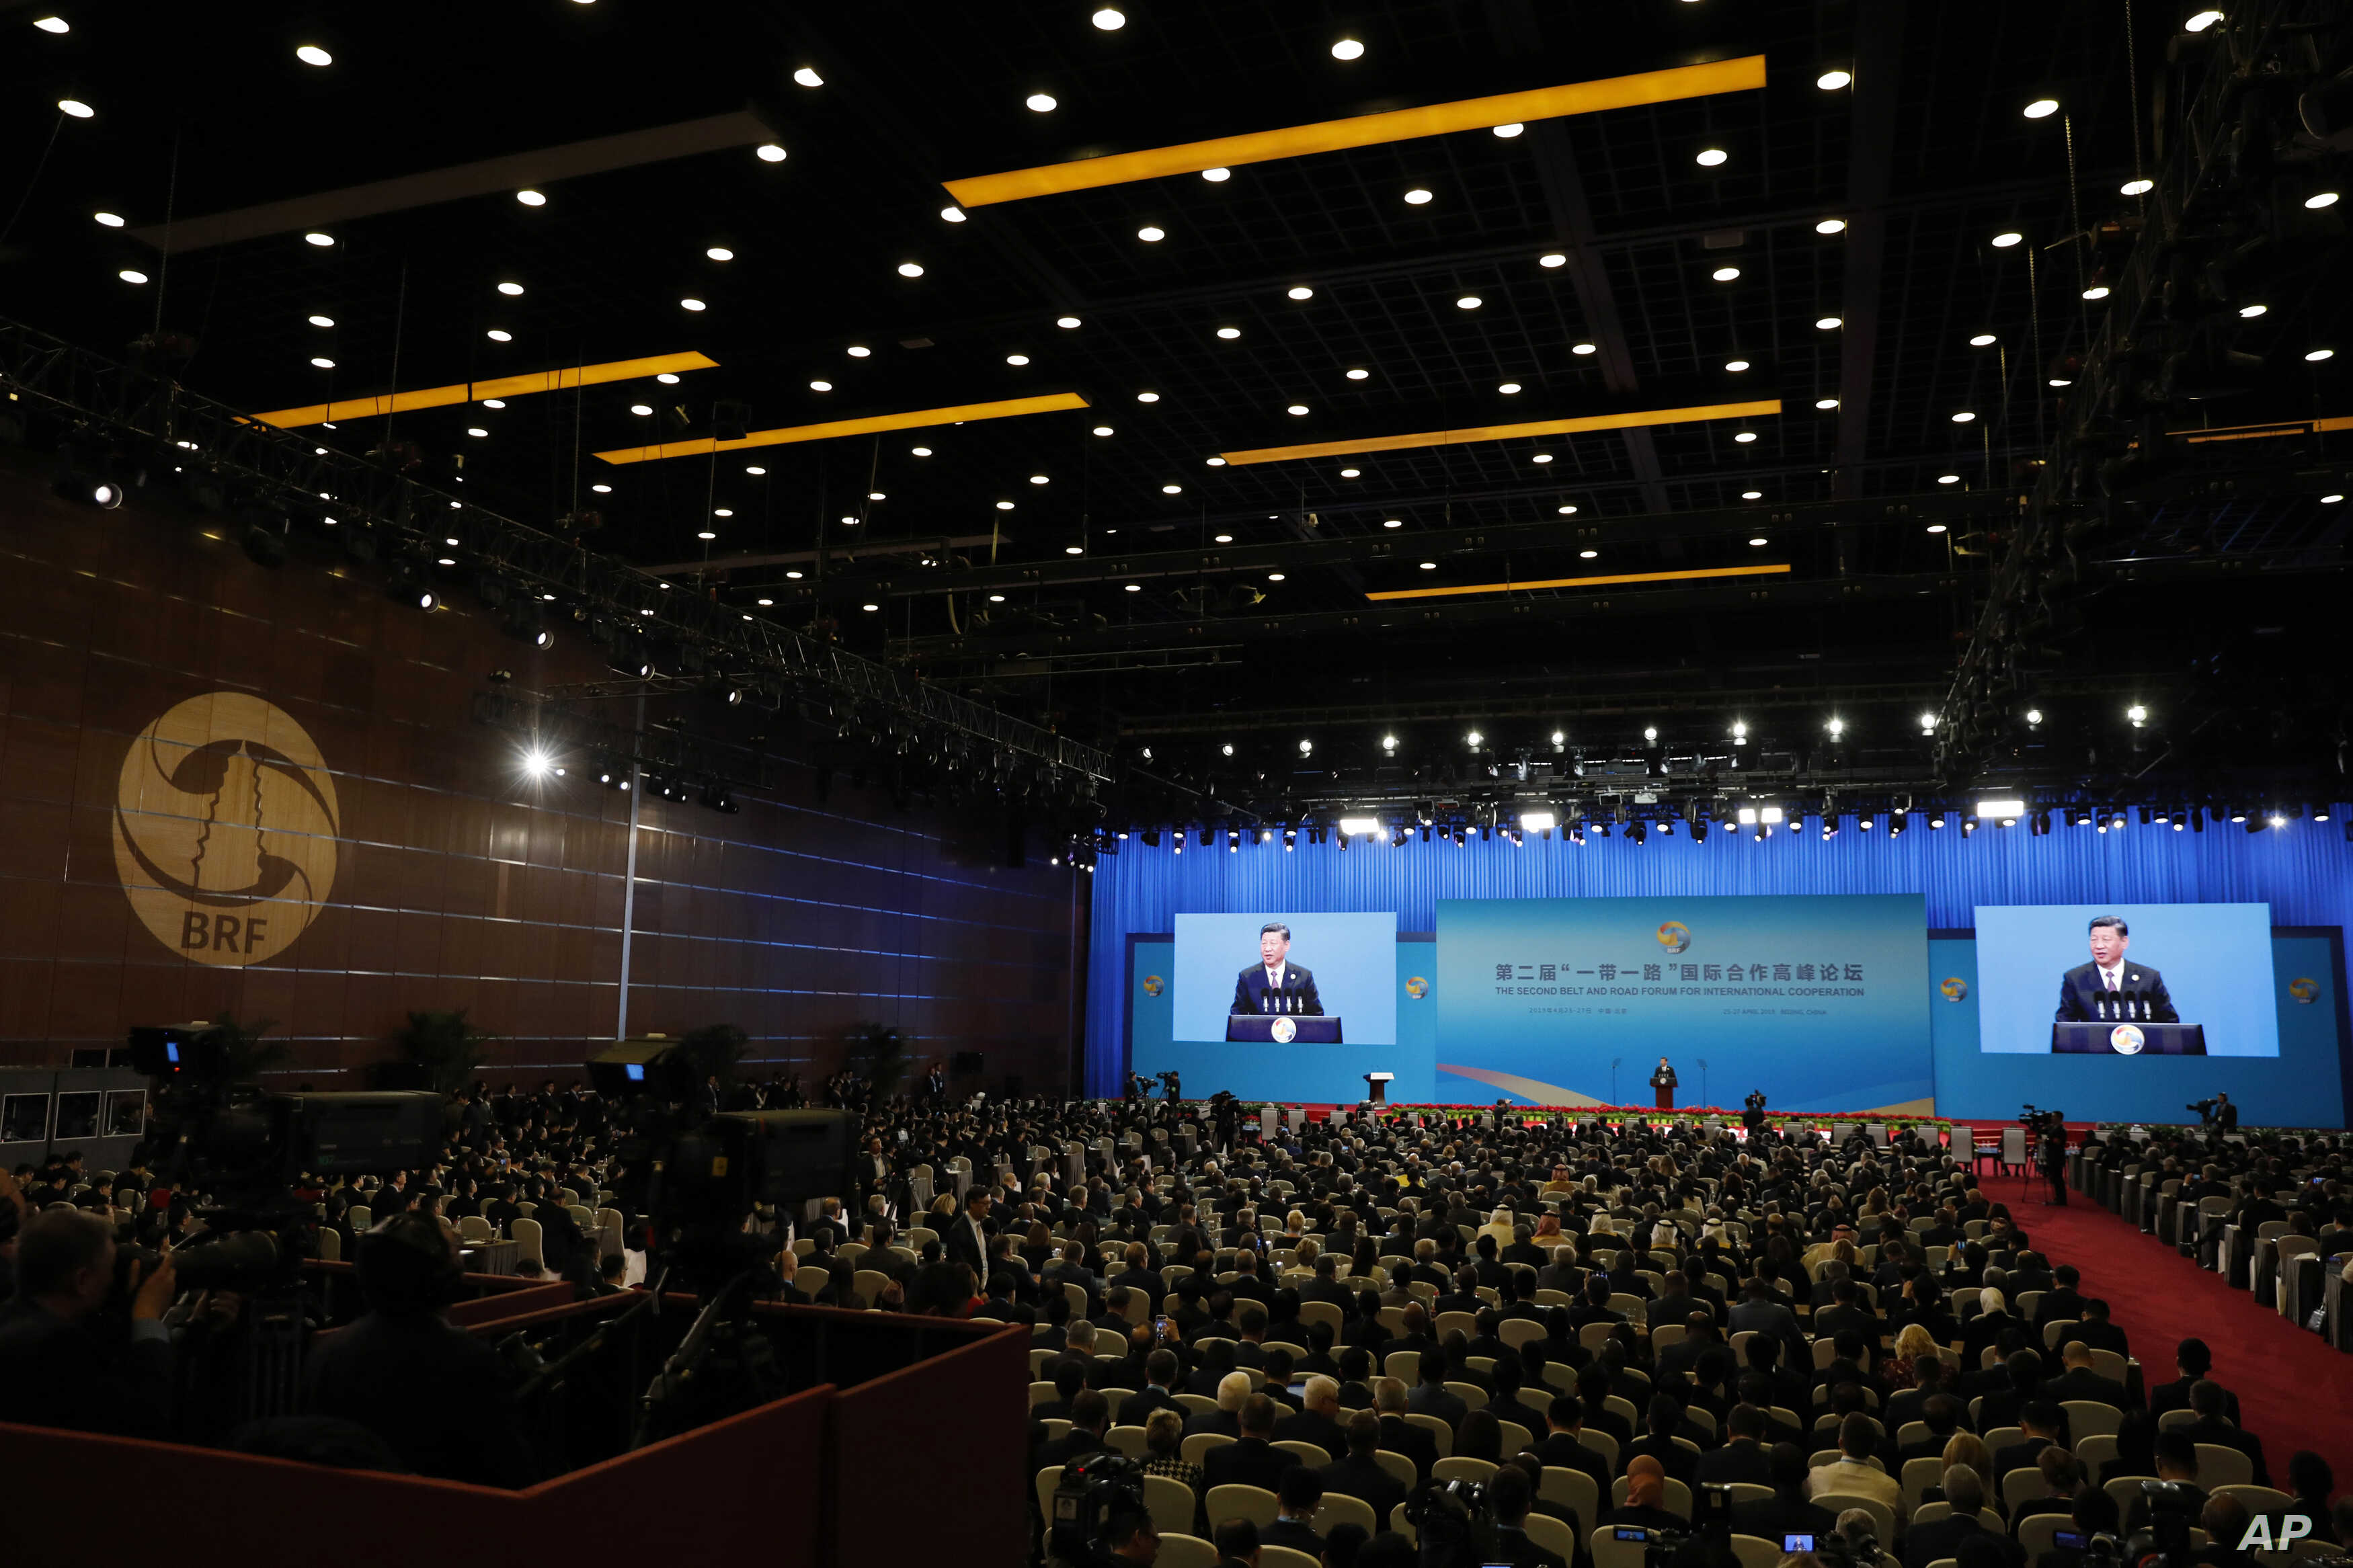 Chinese President Xi Jinping delivers his speech at the opening ceremony of the second Belt and Road Forum for International Cooperation in Beijing, April 26, 2019.